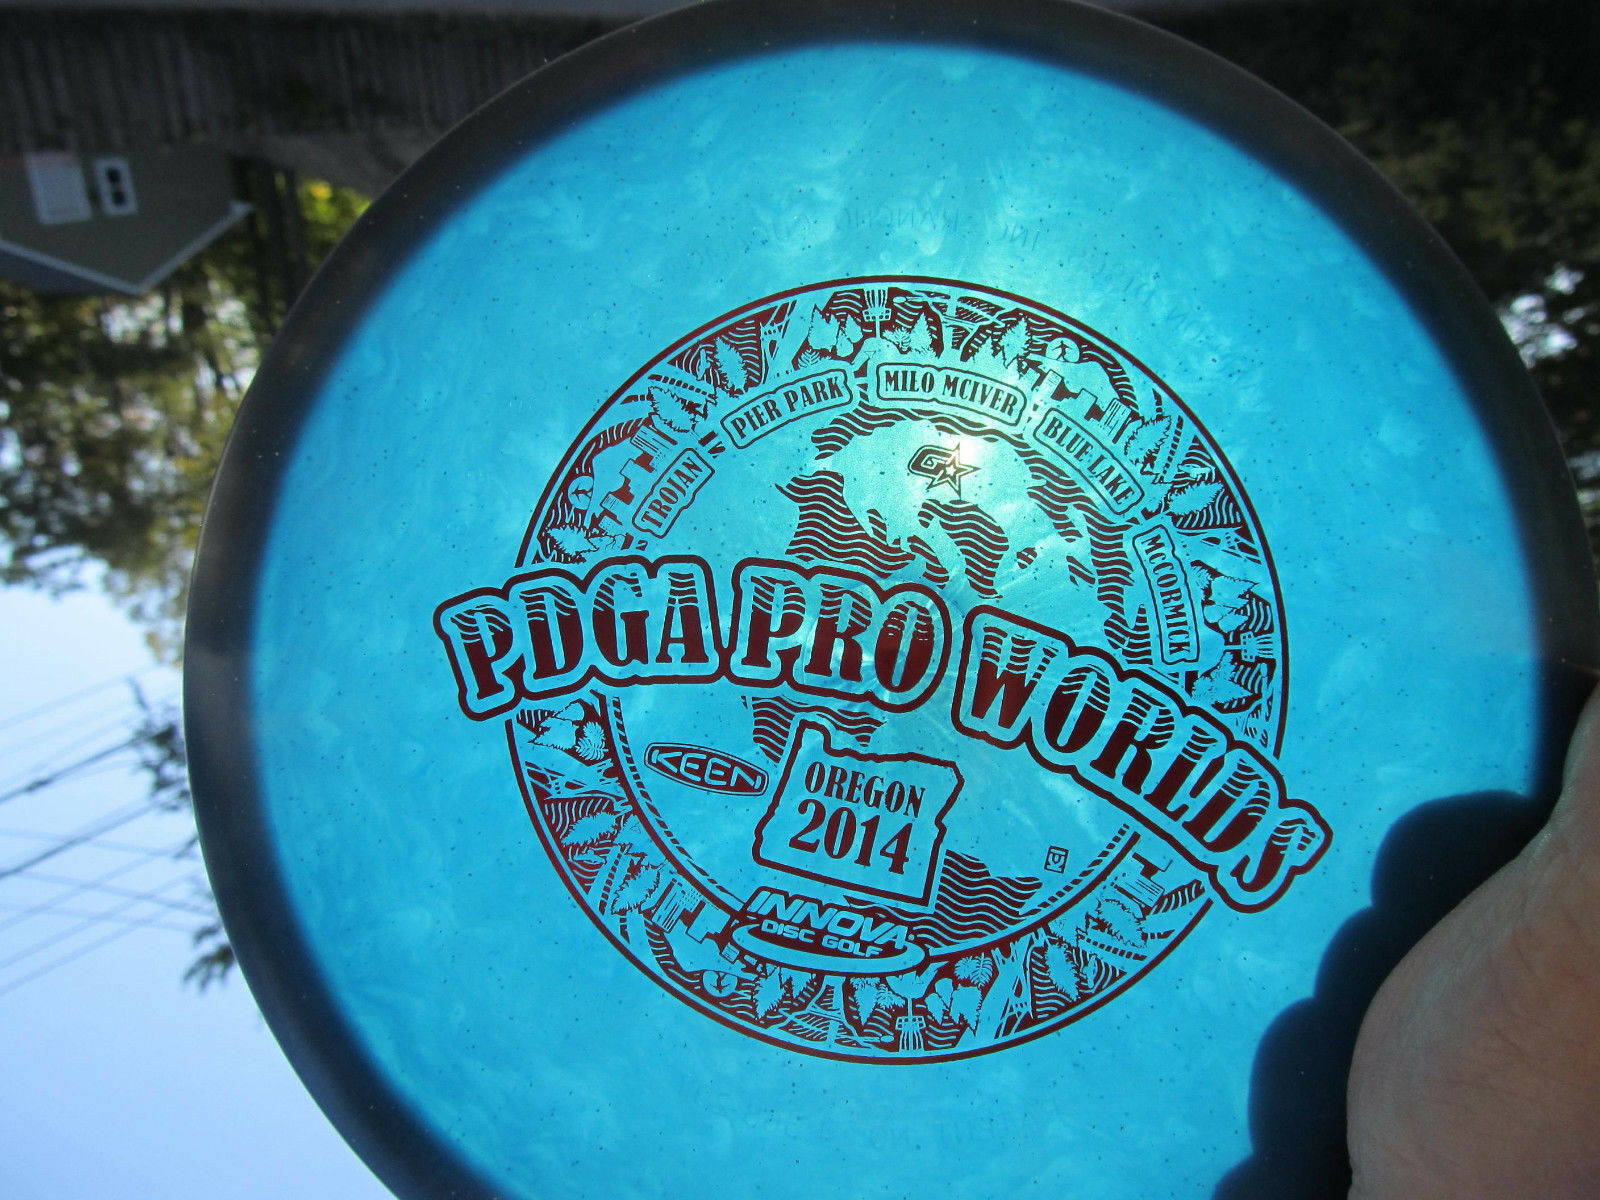 Innova Gstar Roc Sweet 180g Rare 2014 PDGA Worlds stamp ROT Reflective stamp Worlds Disc Golf 92463b